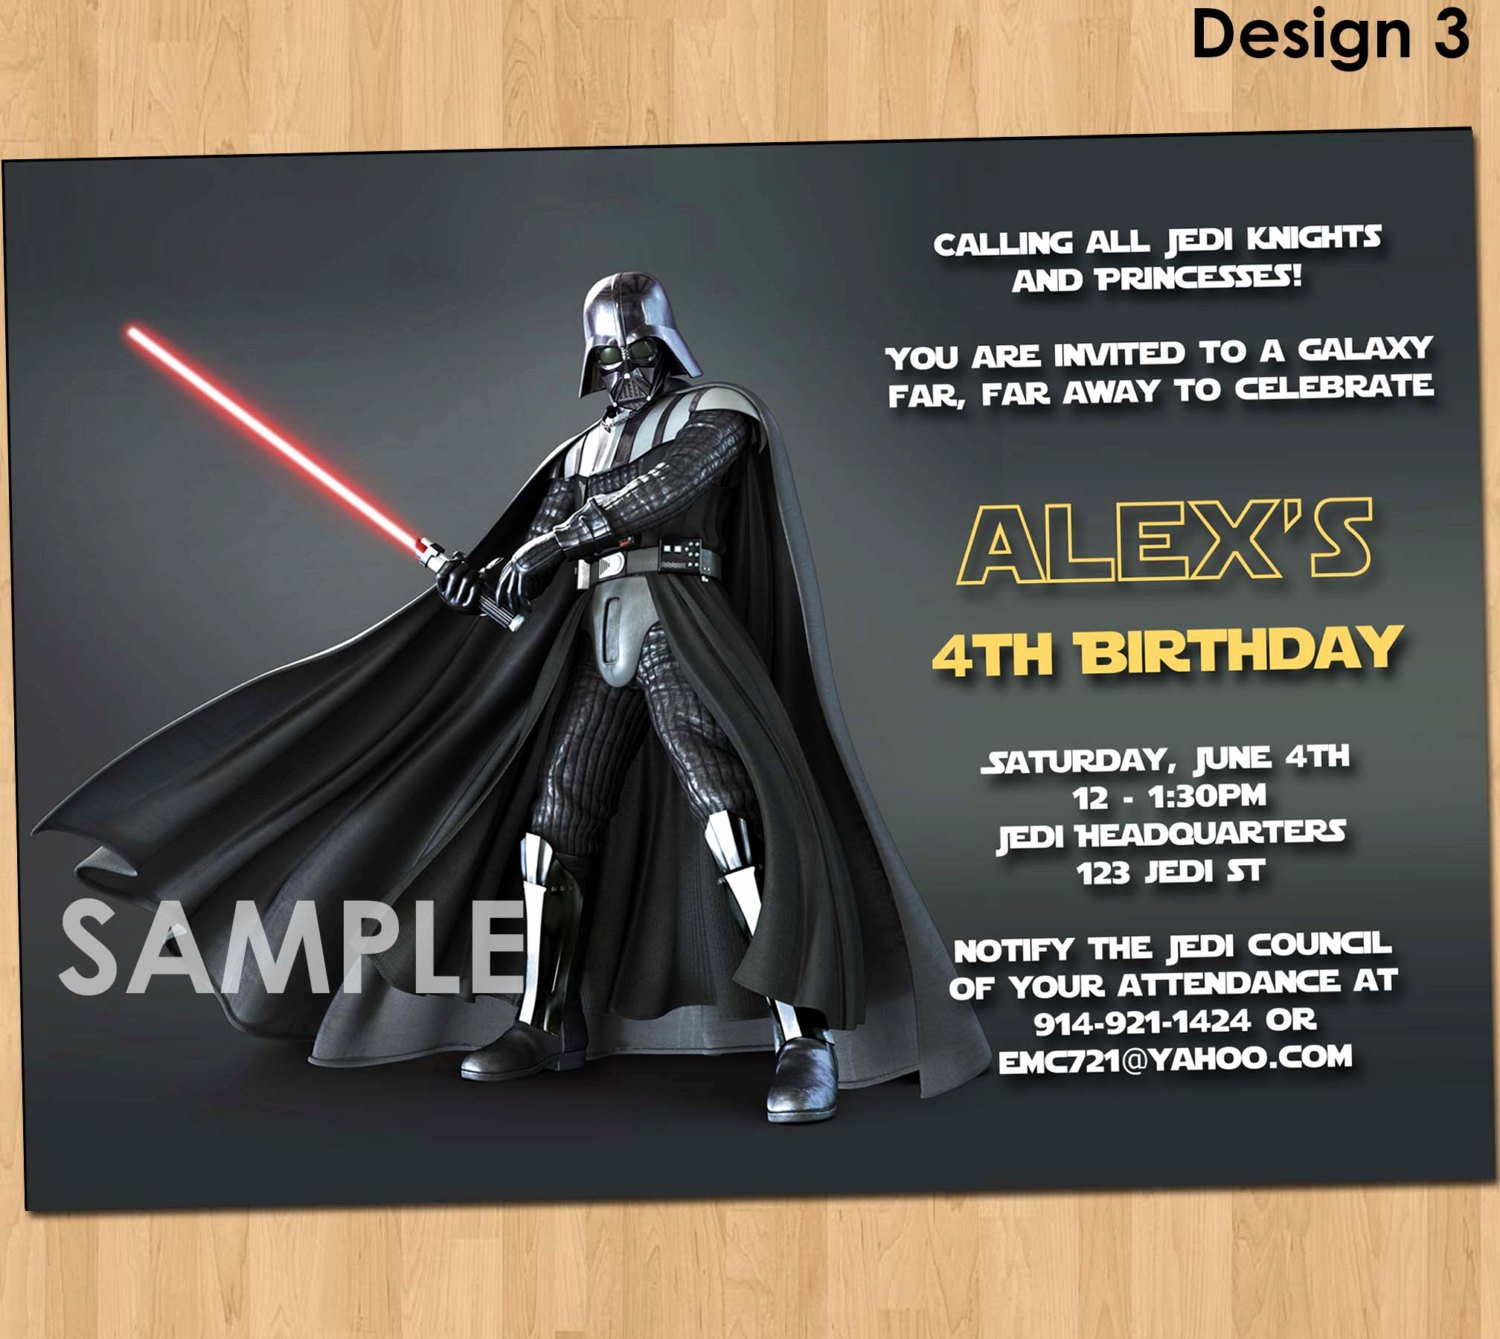 Star Wars Birthday Invitations Luxury Star Wars Invitation Star Wars Party Invitation Star Wars